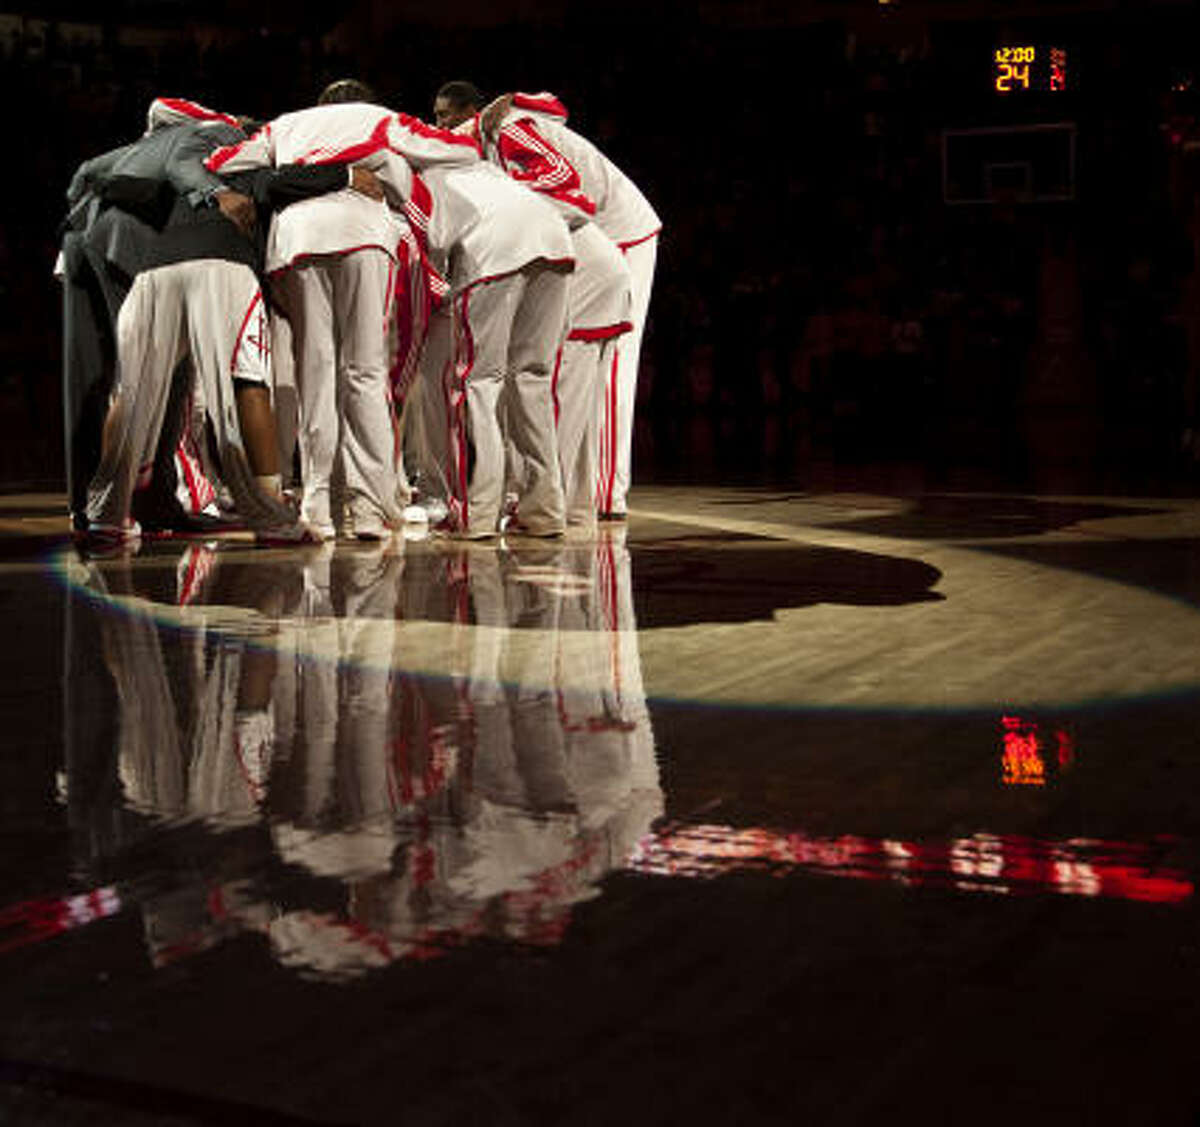 Another shot of the Rockets before tipoff.